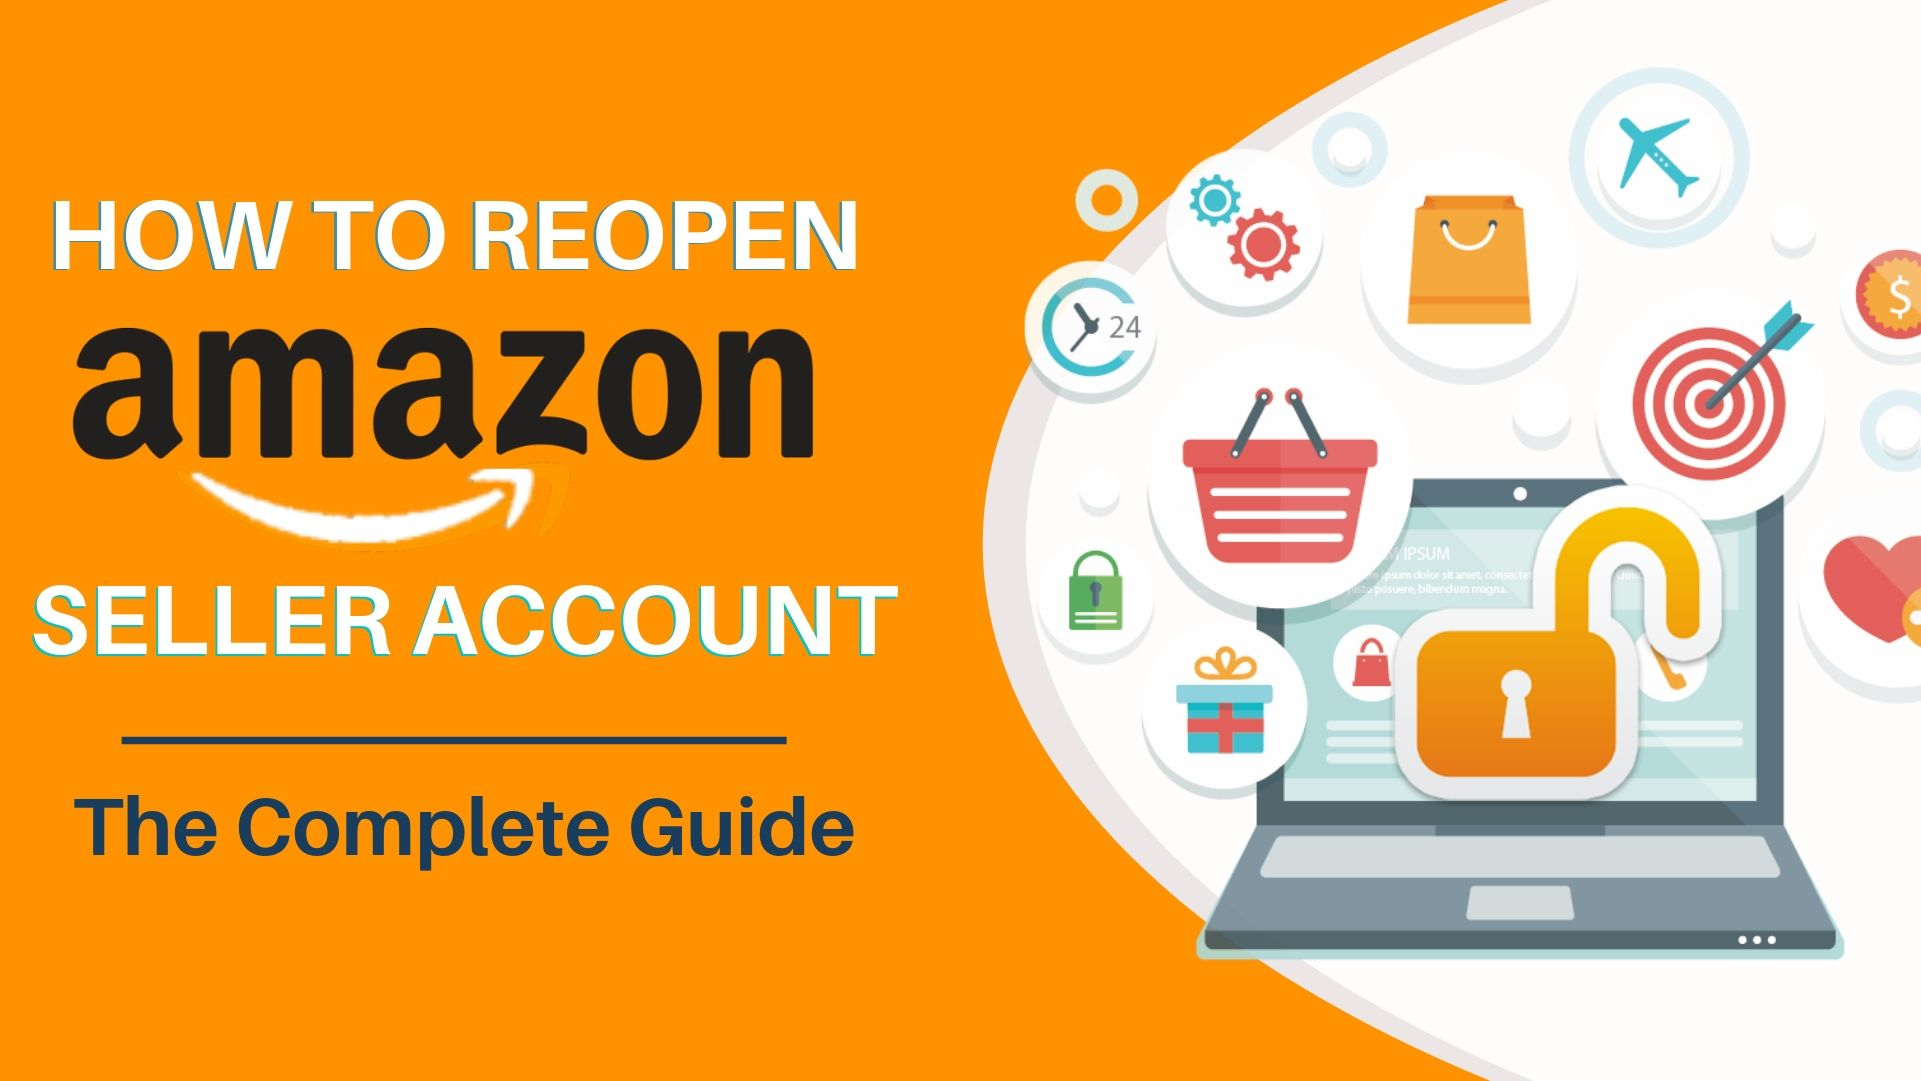 HOW-TO-REOPEN-AMAZON-SELLER-ACCOUNT-–-THE-COMPLETE-GUIDE